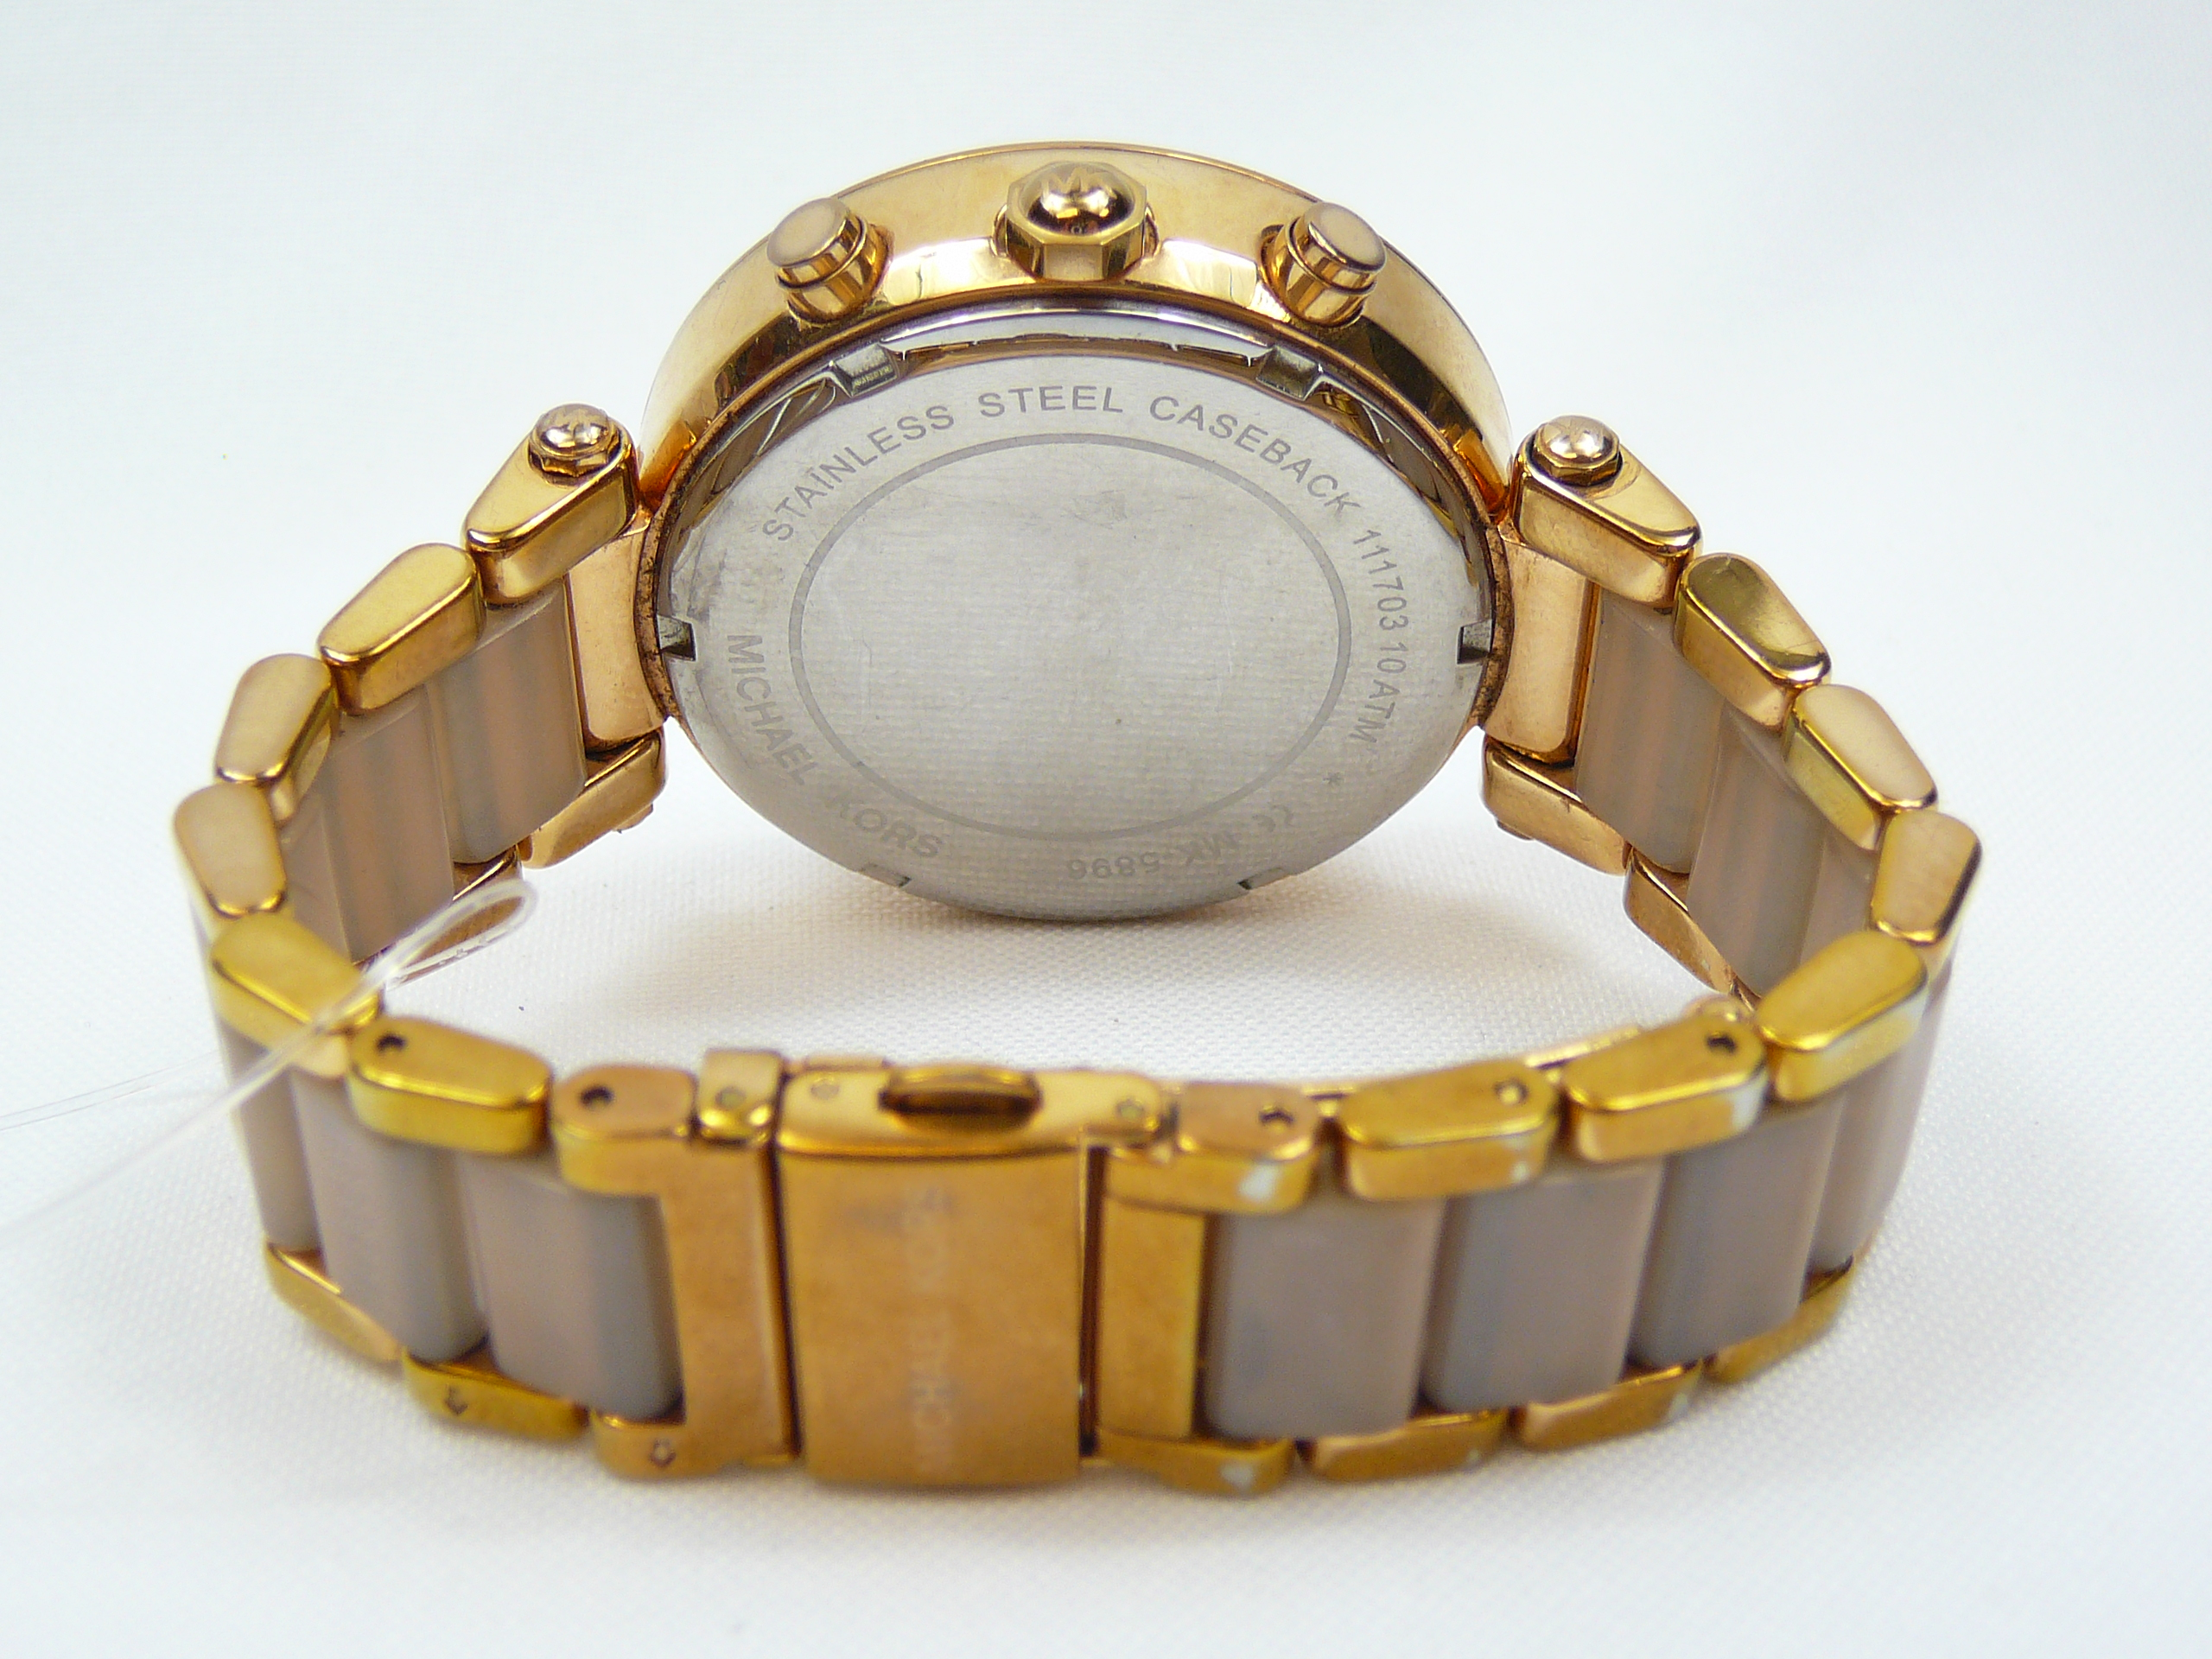 Ladies Michael Kors Wrist Watch - Image 3 of 3